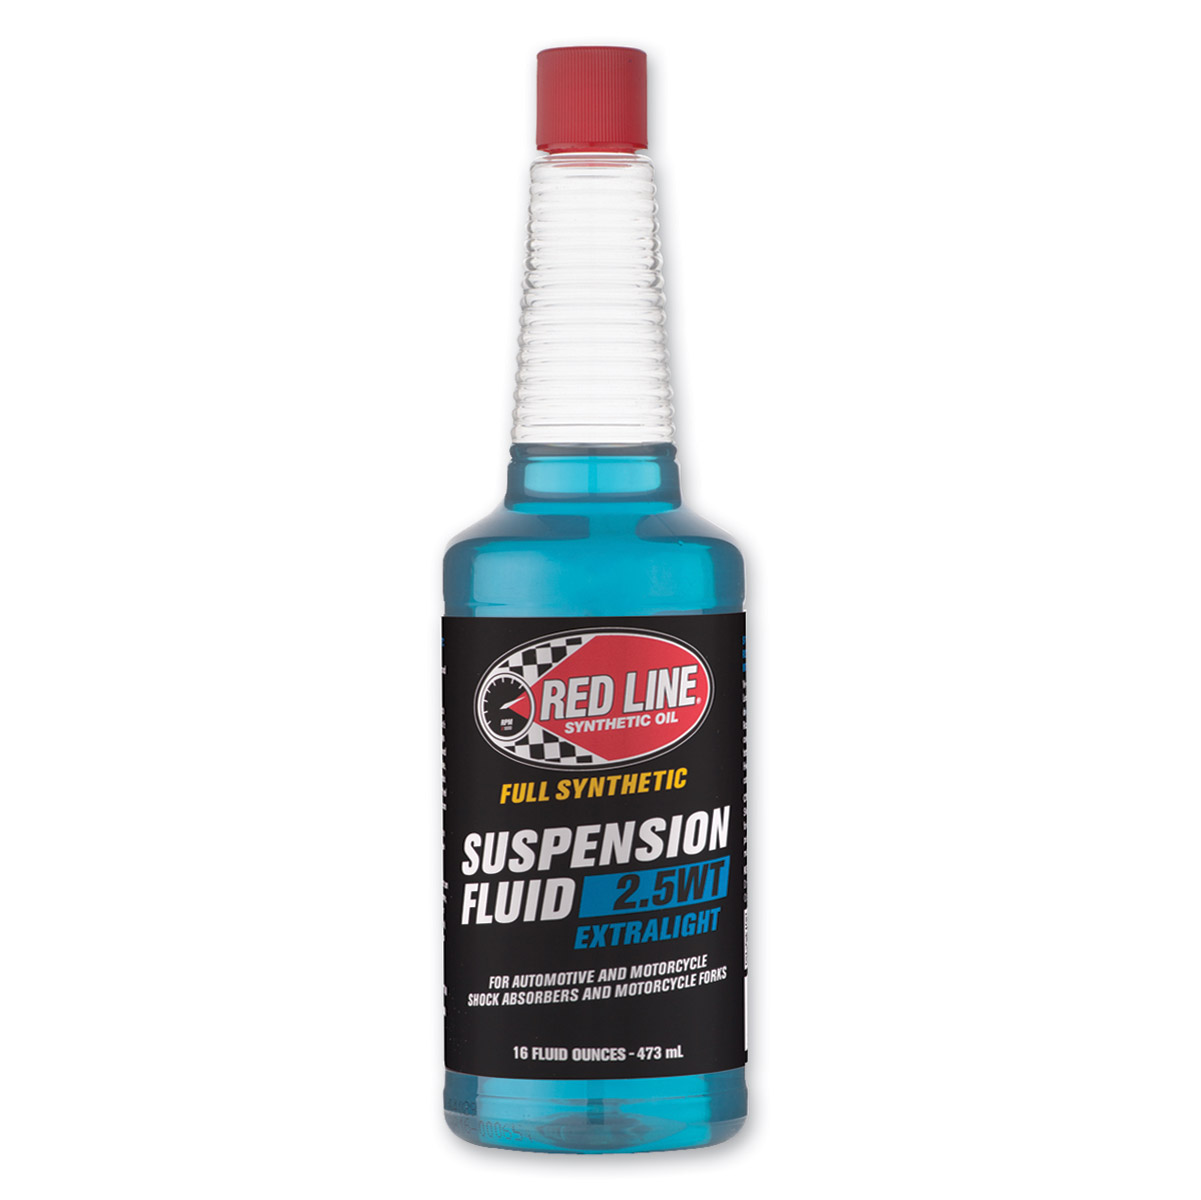 Red Line Suspension Fluid ExtraLight 2.5W 16 oz